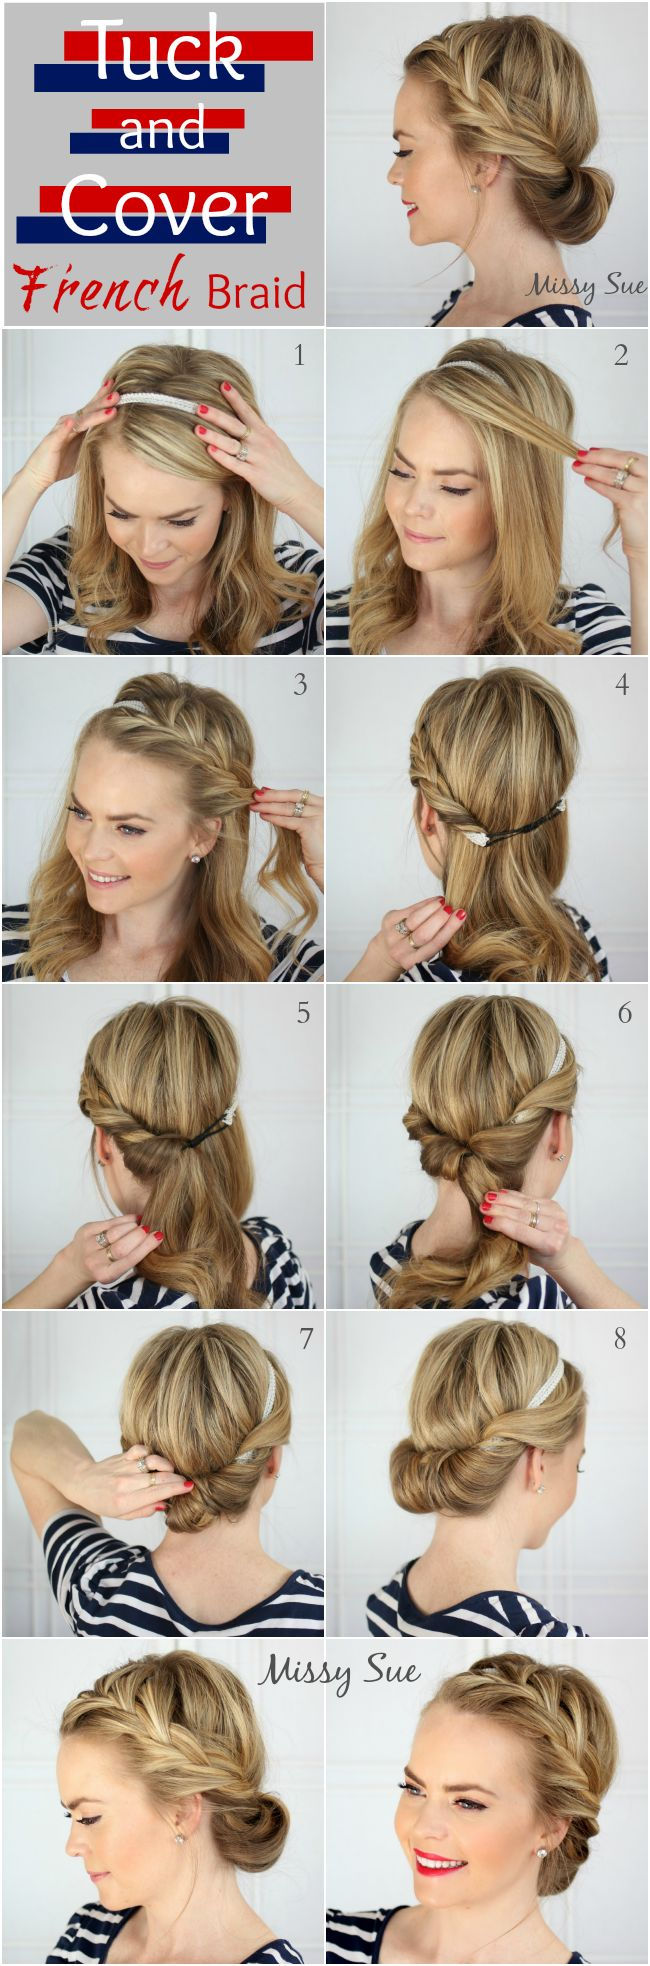 276 best hairstyles for medium length hair images on pinterest braid 7 tuck and cover french braid solutioingenieria